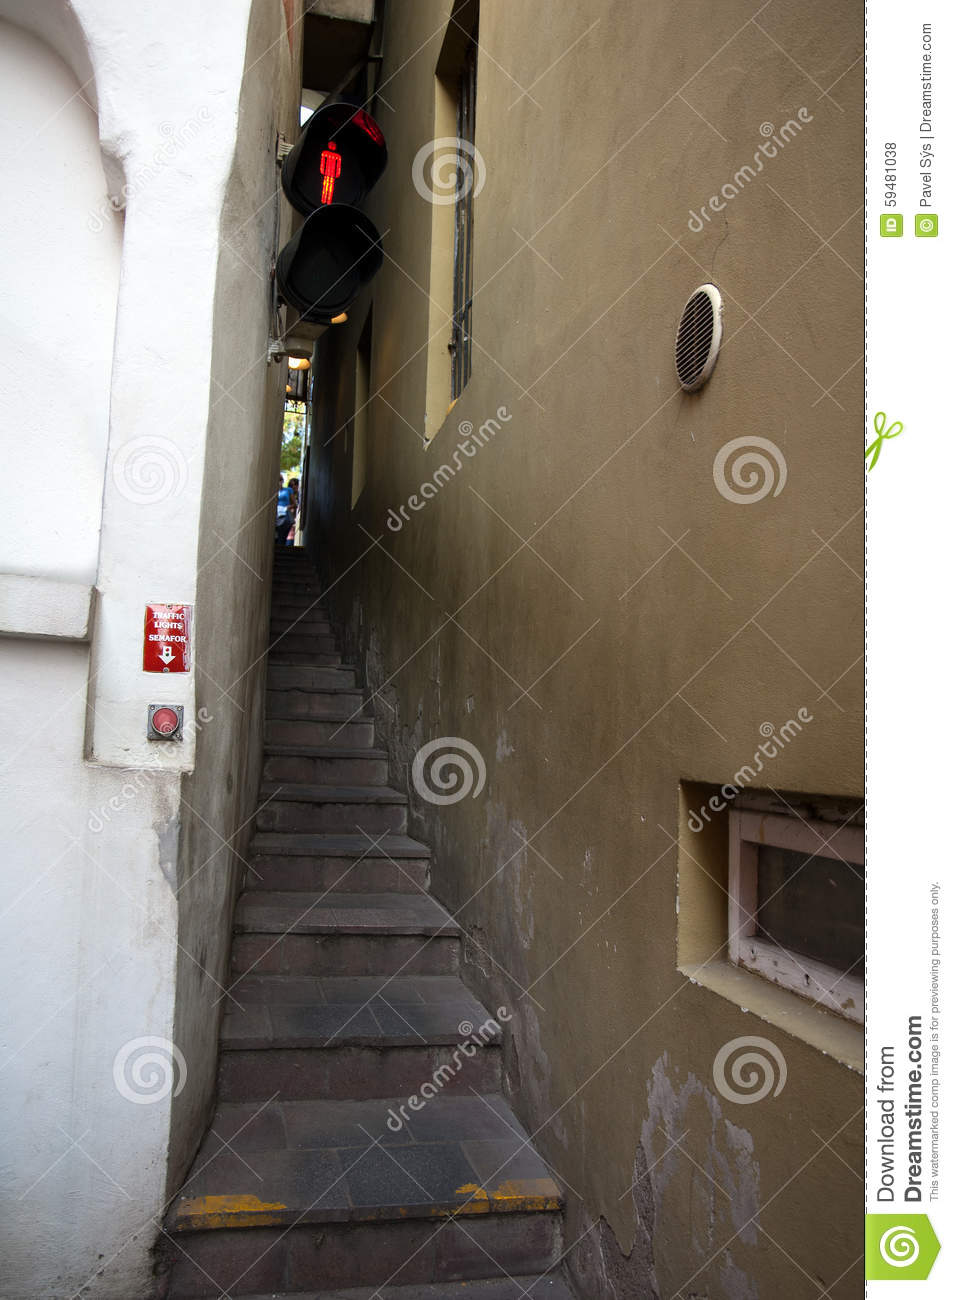 Narrow Stairs With A Traffic Light Stock Photo Image Of Funny